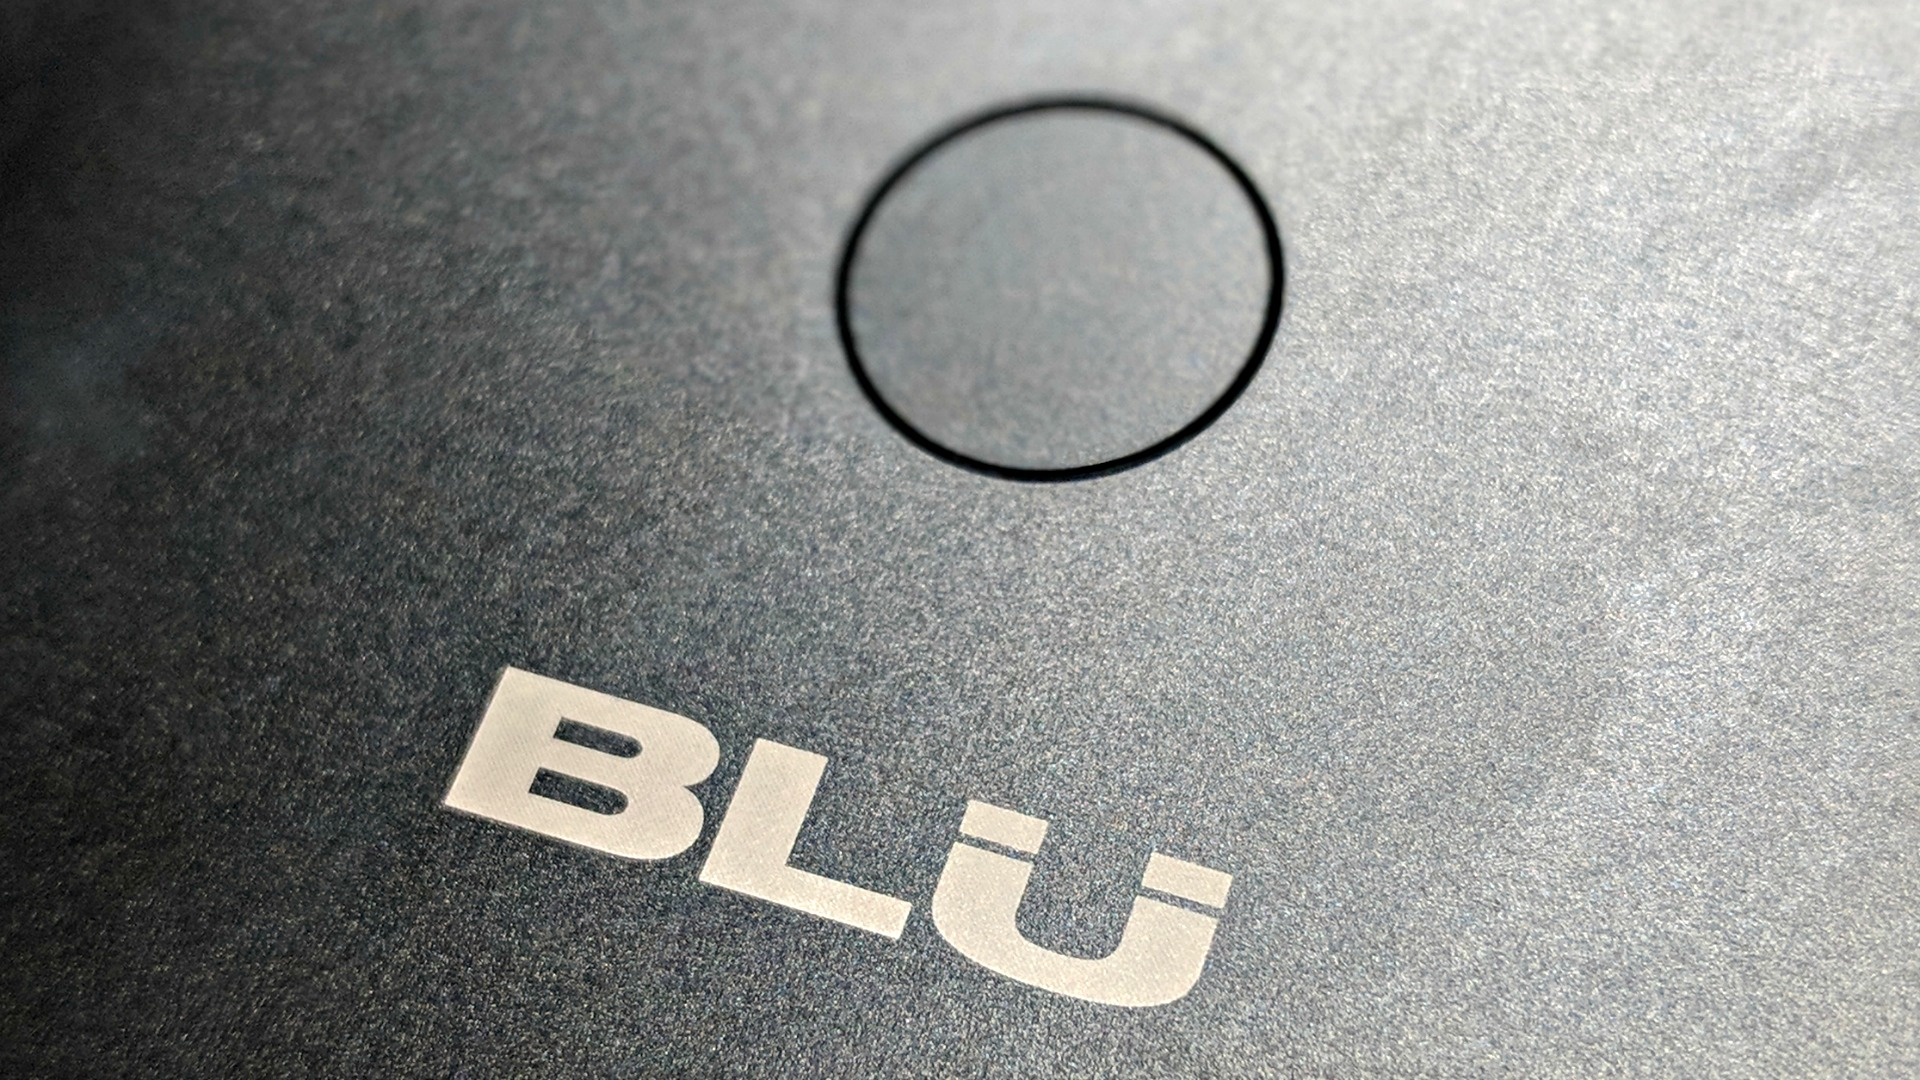 Blu Vivo X Fingerprint Reader